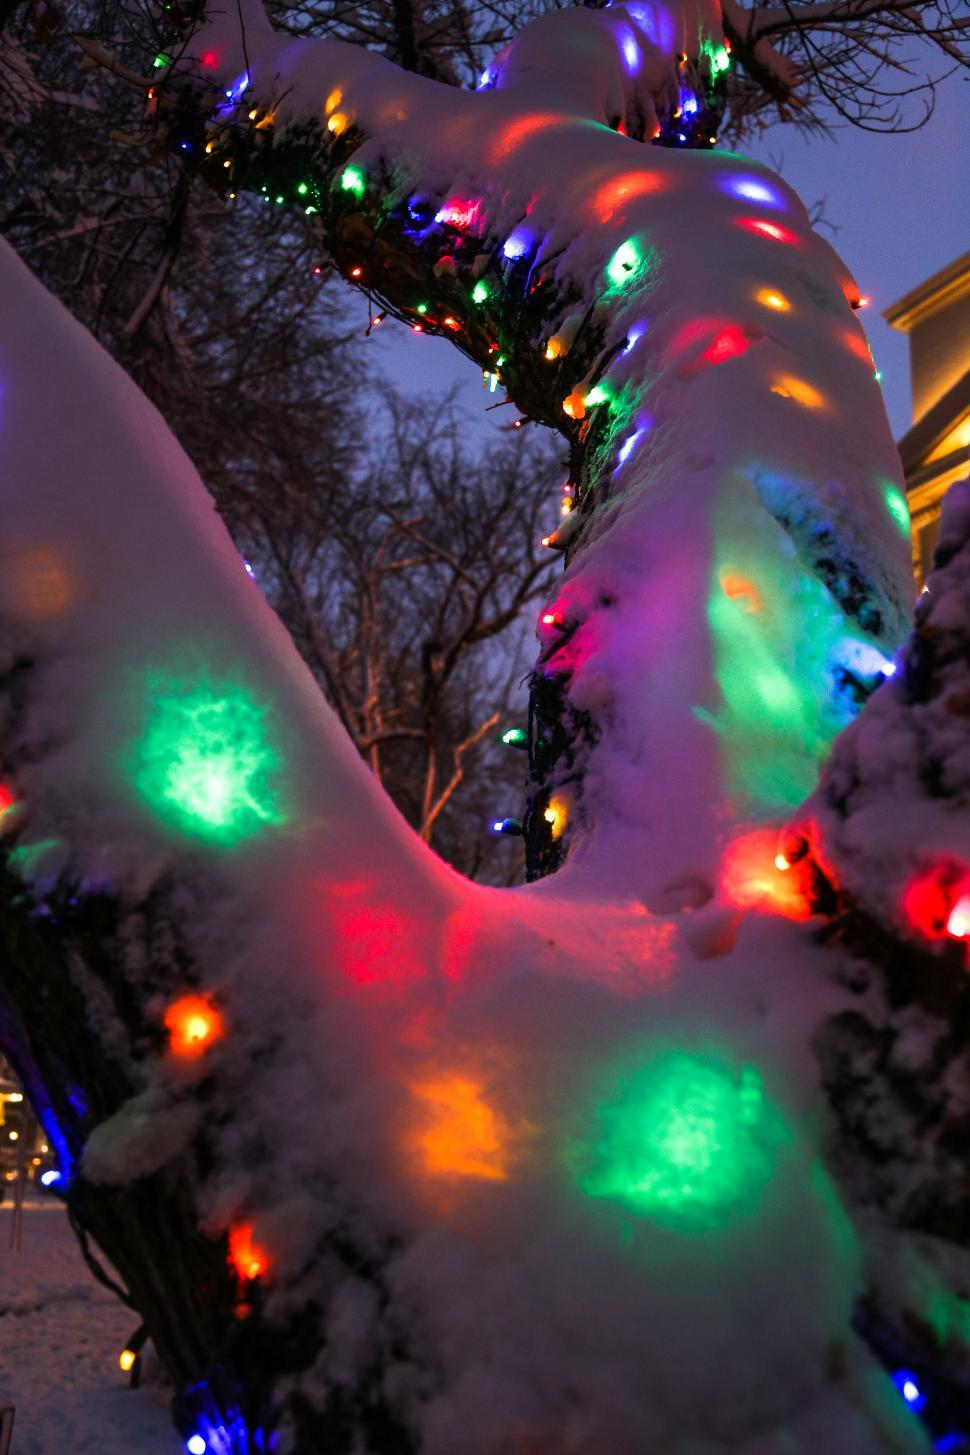 Download Free Stock HD Photo of Tree with snow covered lights Online